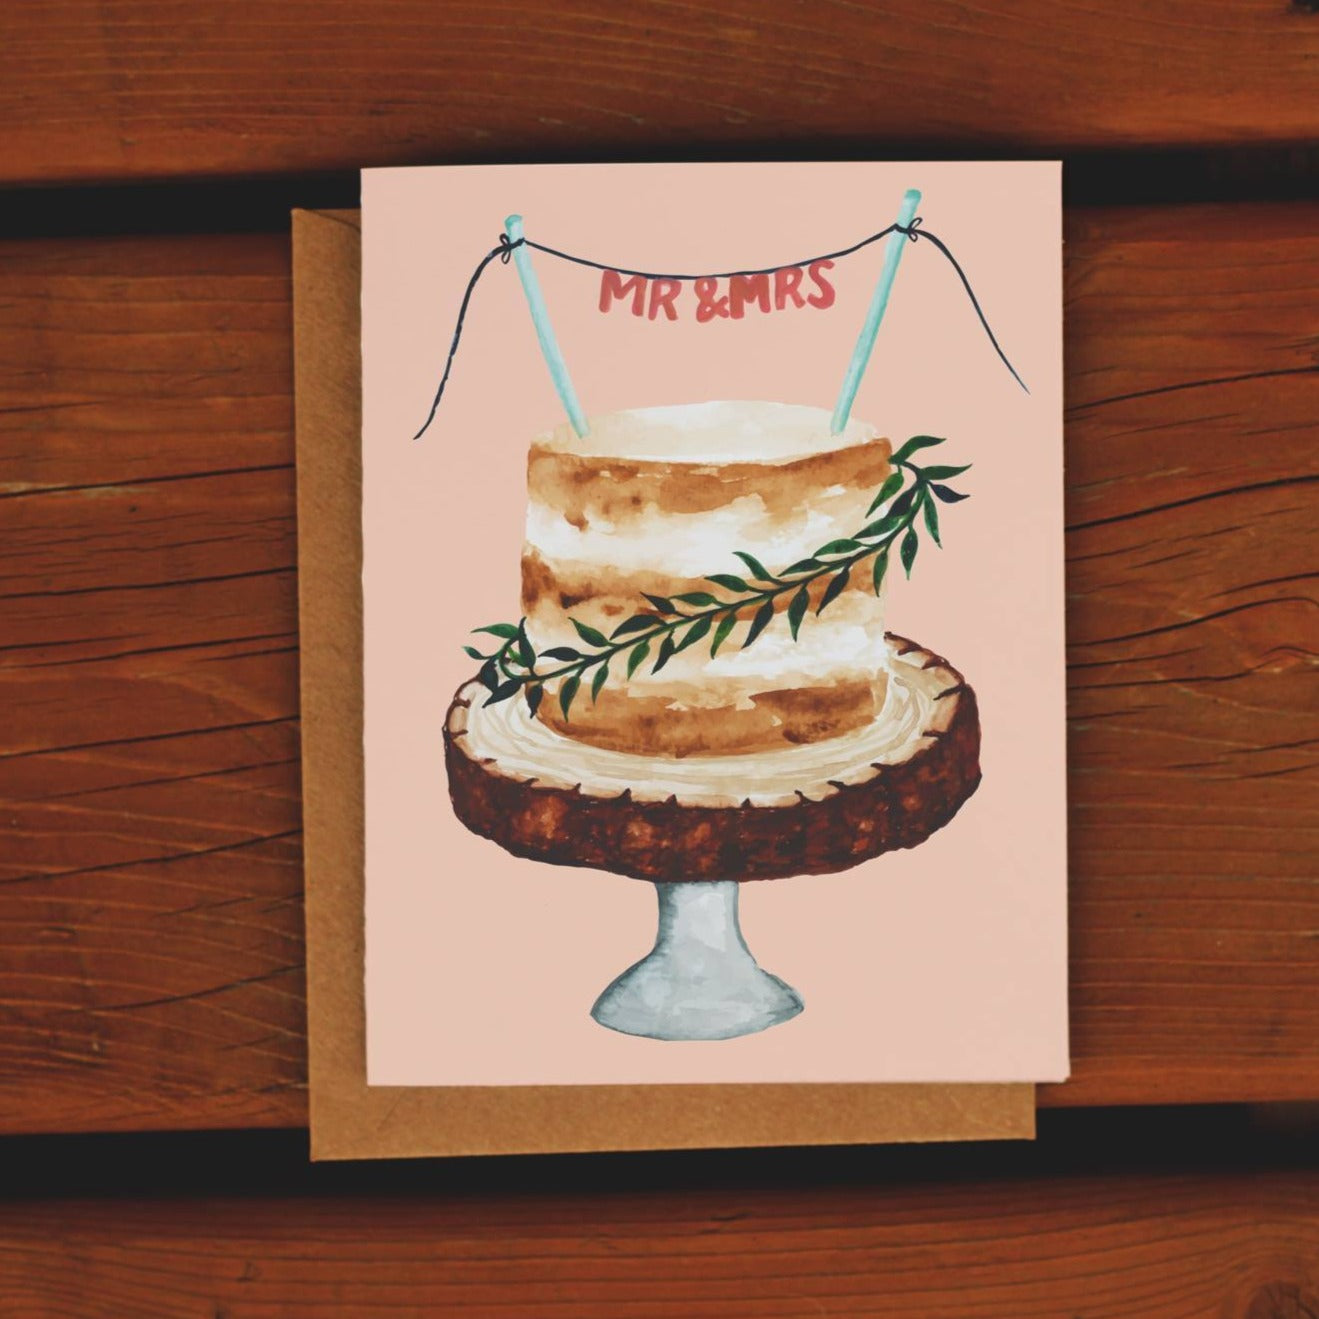 Mr & Mrs Greeting Card - Femme Wares Niagara Local Small Business